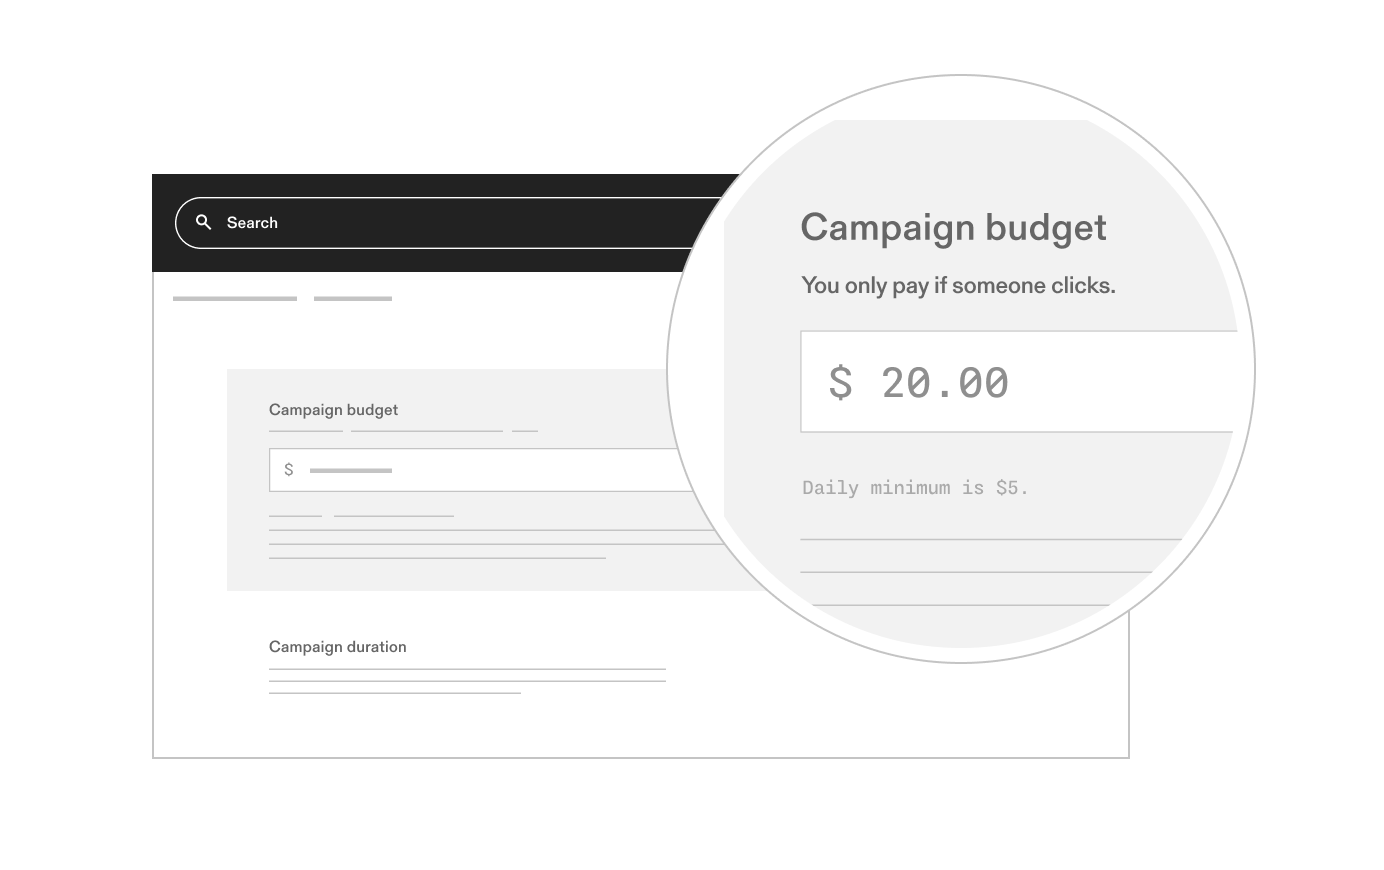 An image showing a screen selecting a budget for a Google Smart Shopping campaign